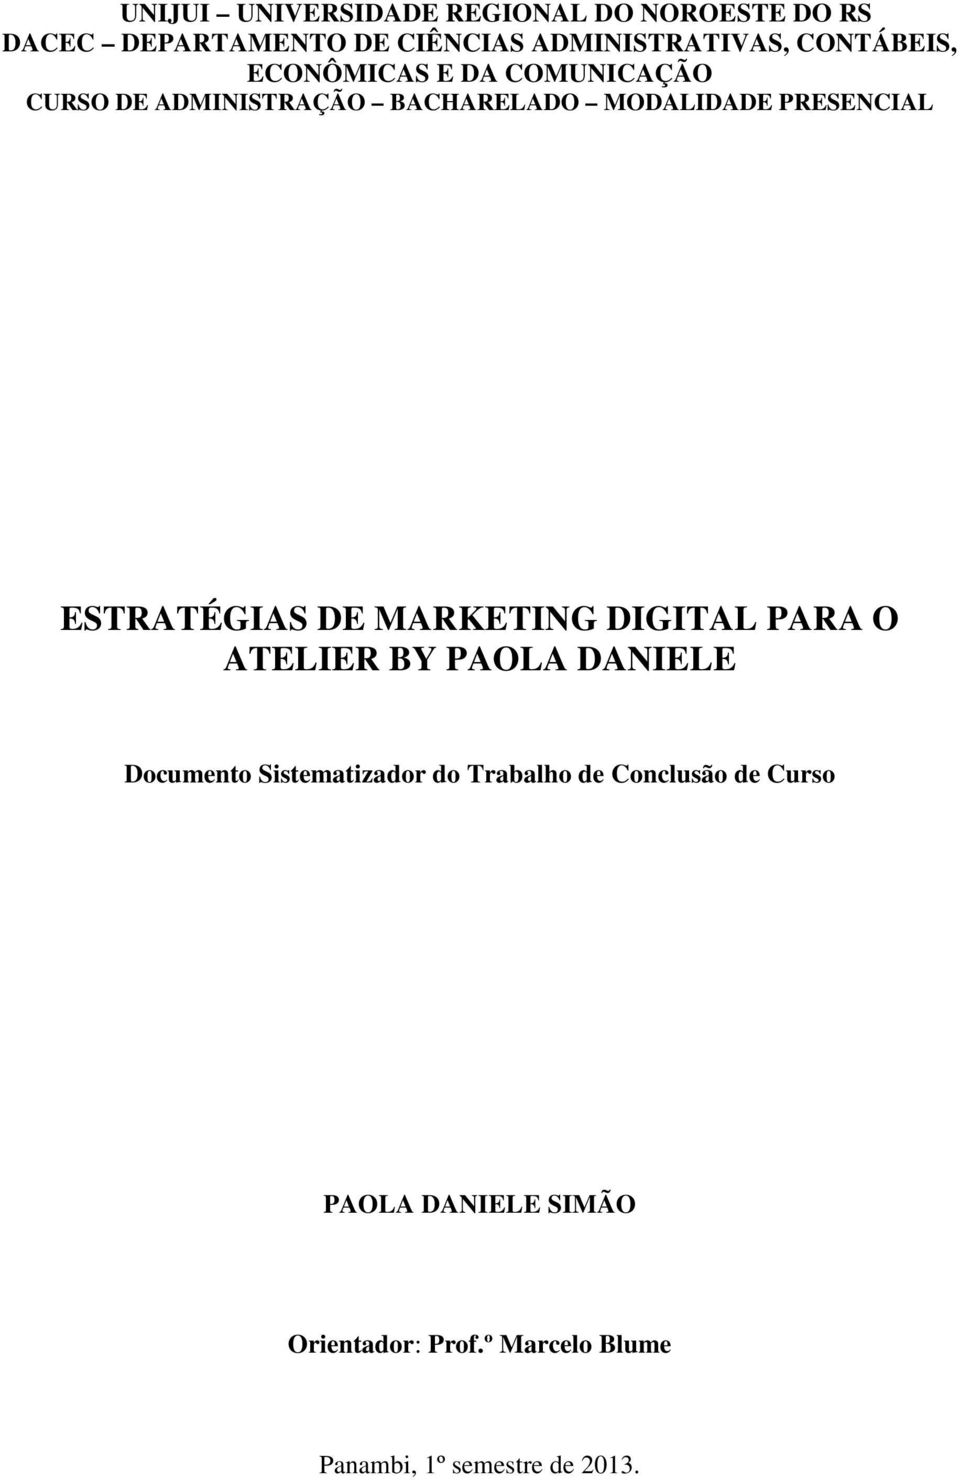 ESTRATÉGIAS DE MARKETING DIGITAL PARA O ATELIER BY PAOLA DANIELE Documento Sistematizador do